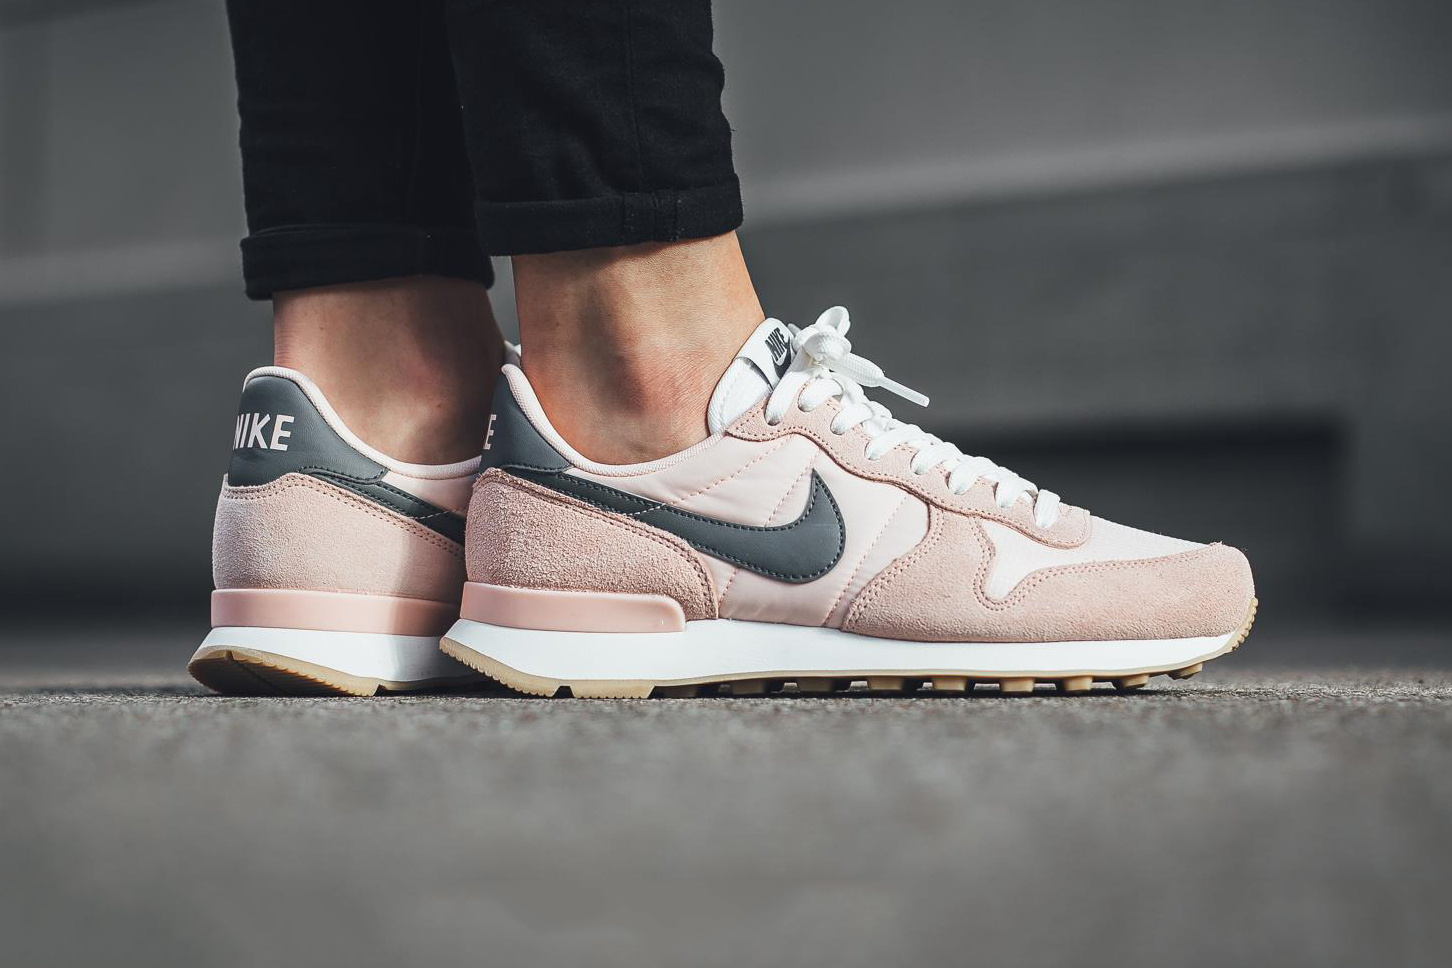 nike unveils internationalist in sunset tint cool grey. Black Bedroom Furniture Sets. Home Design Ideas